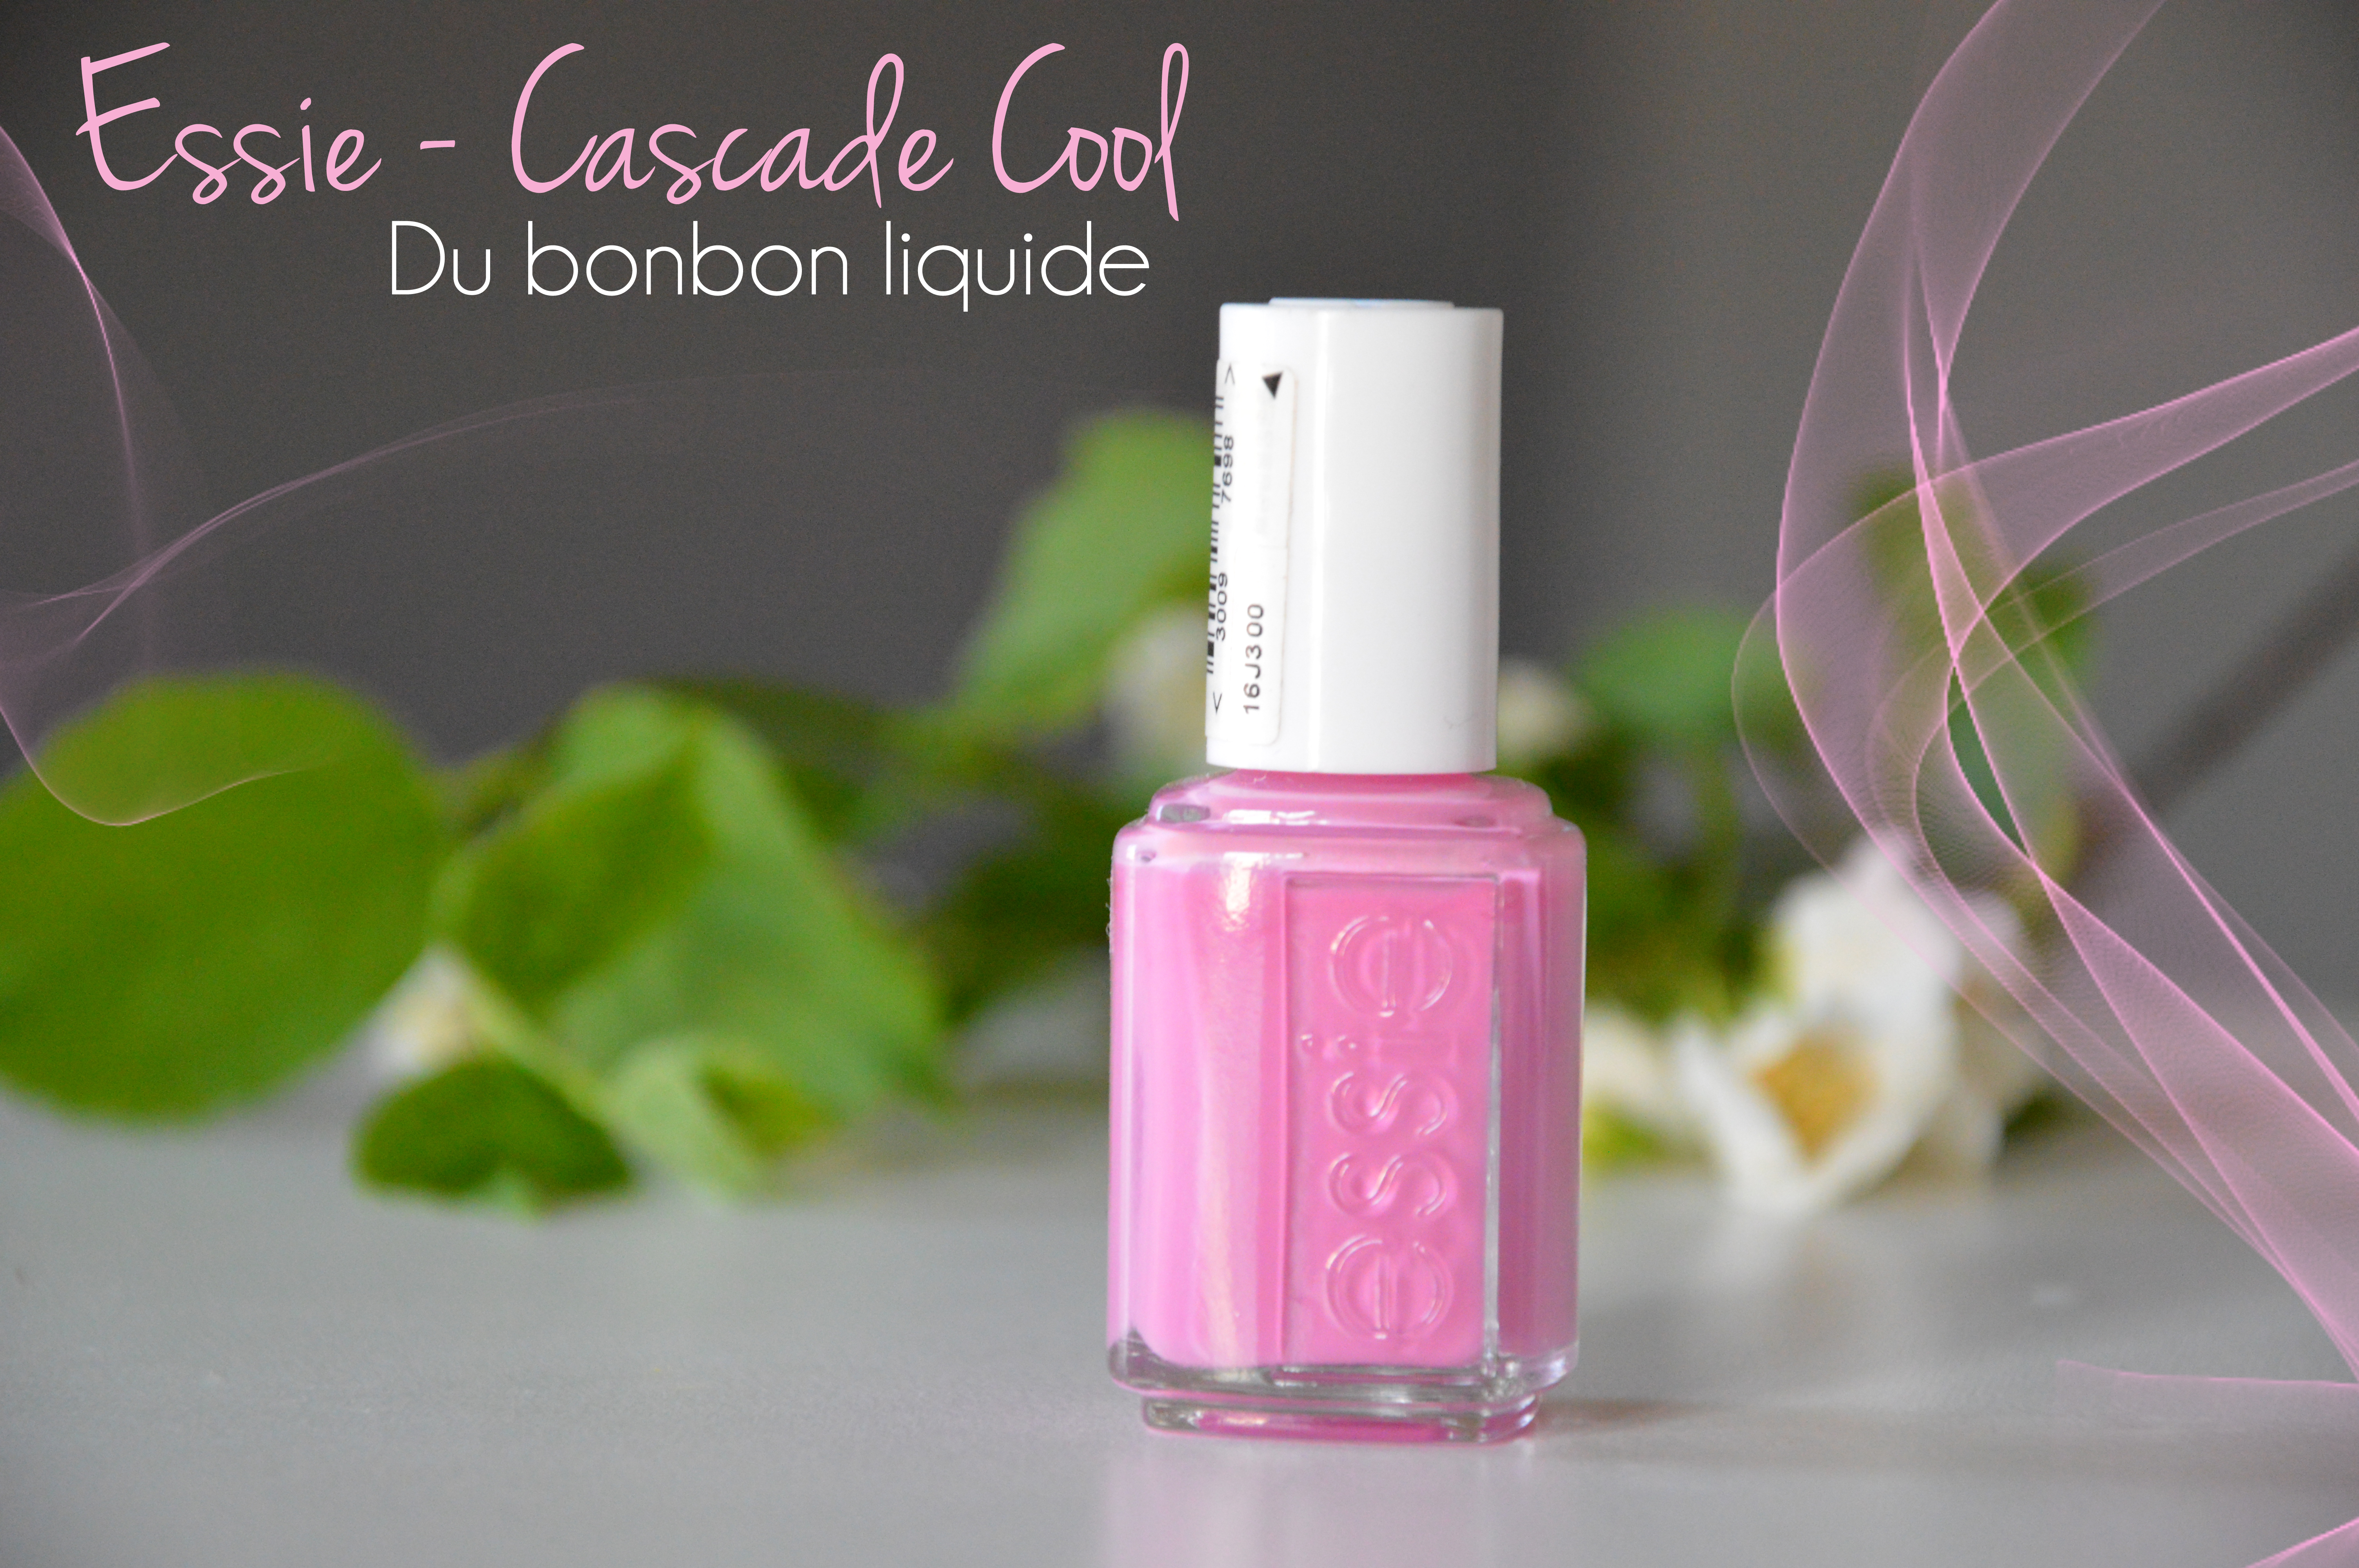 ALITTLEB_BLOG_BEAUTE_ESSIE_CASCADE_COOL_ZOOM